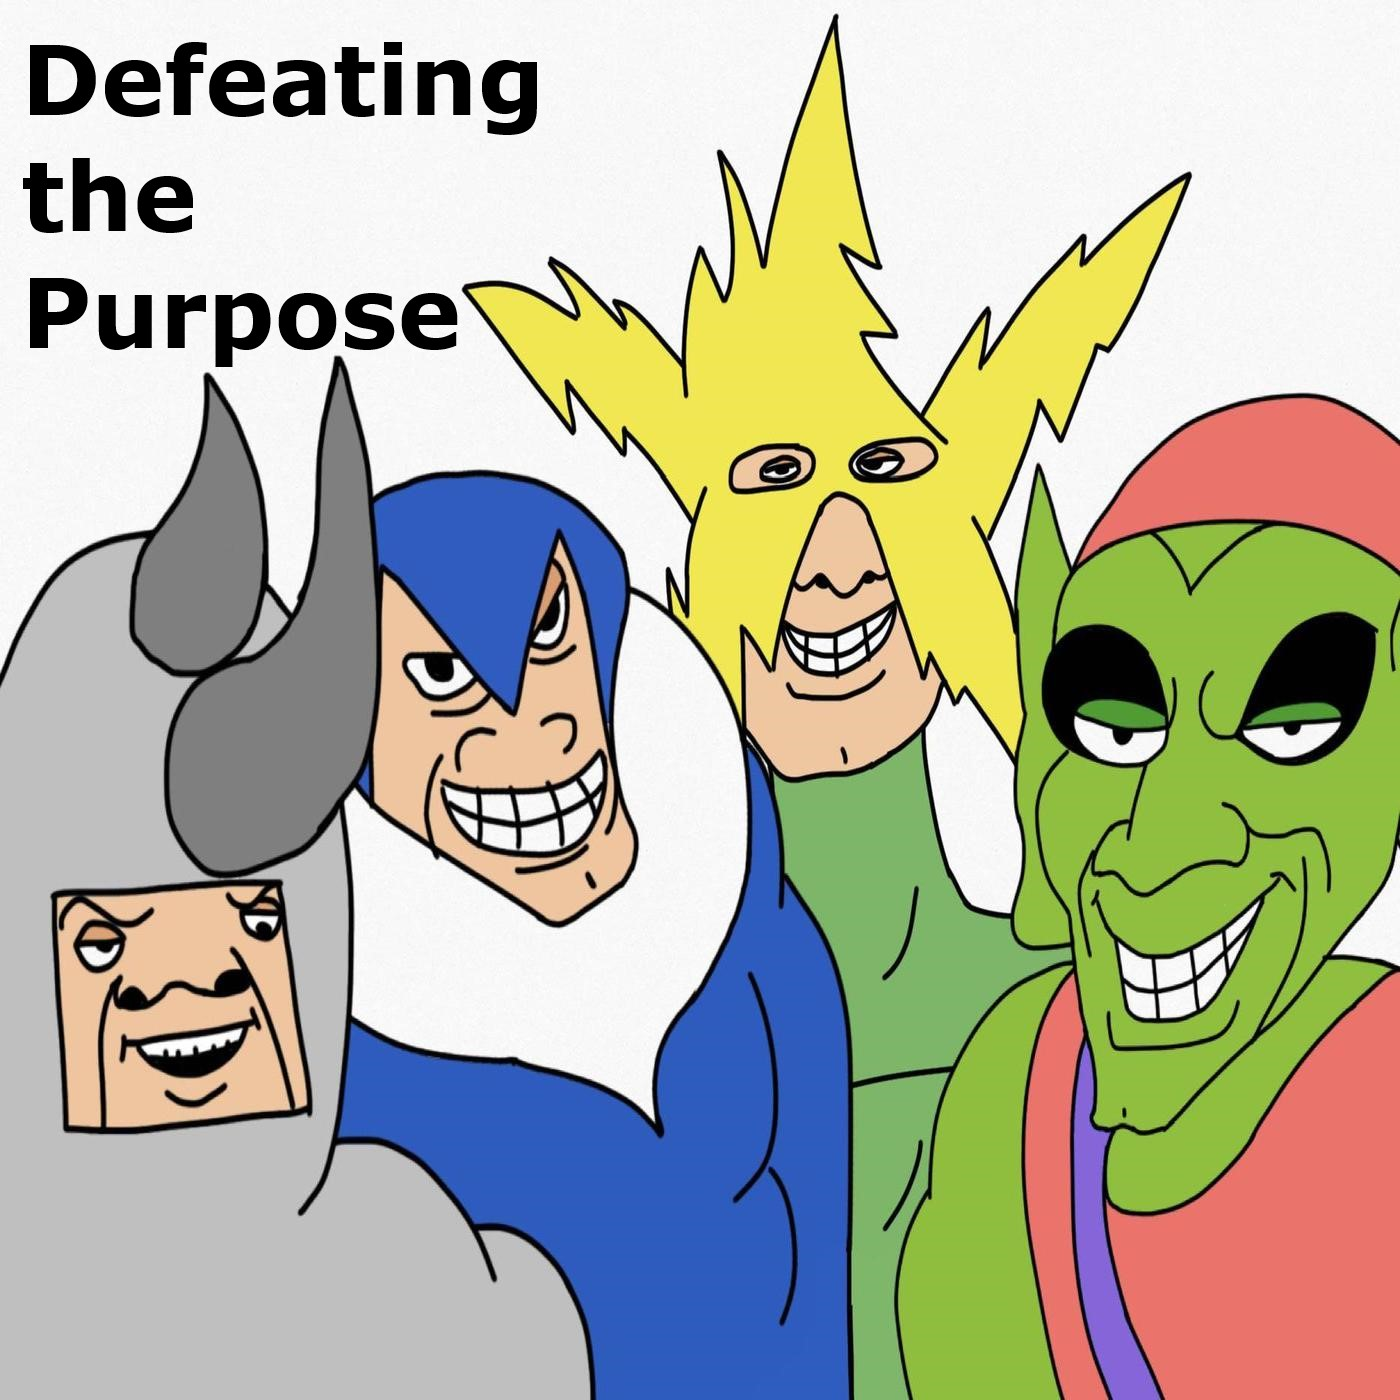 Defeating the Purpose